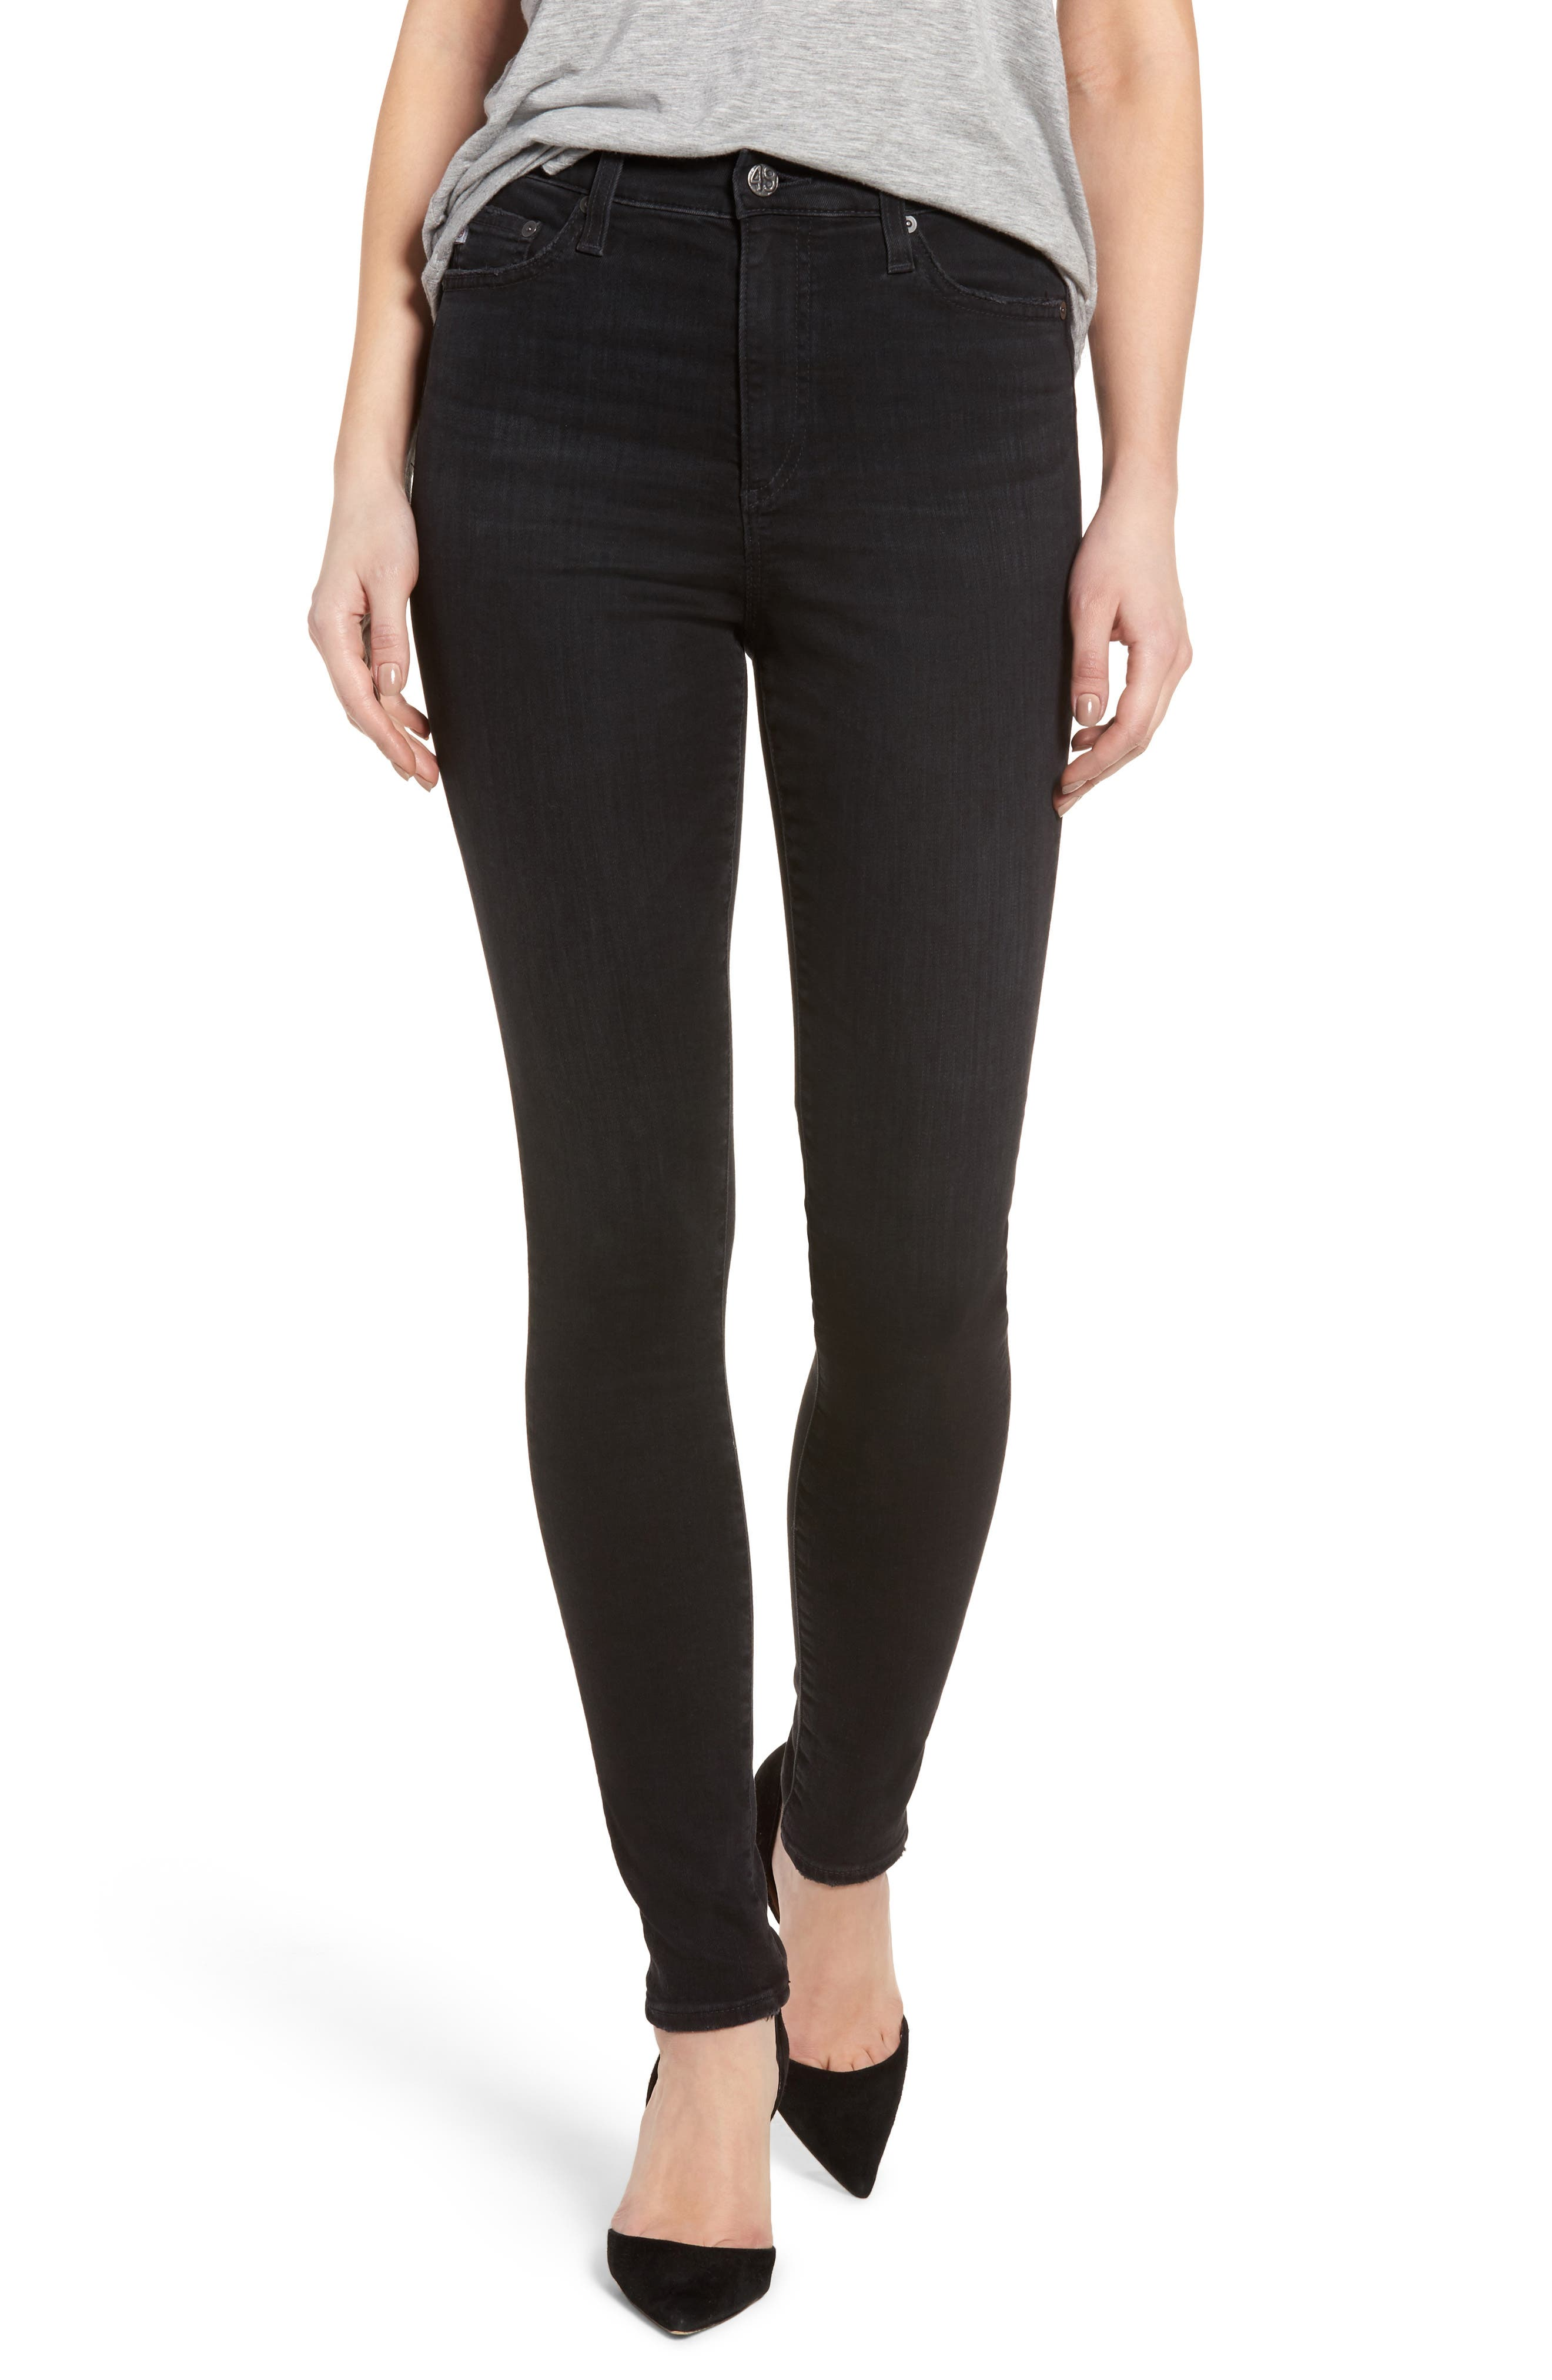 Mila High Rise Skinny Jeans,                         Main,                         color, 03 Years Black Obsidian